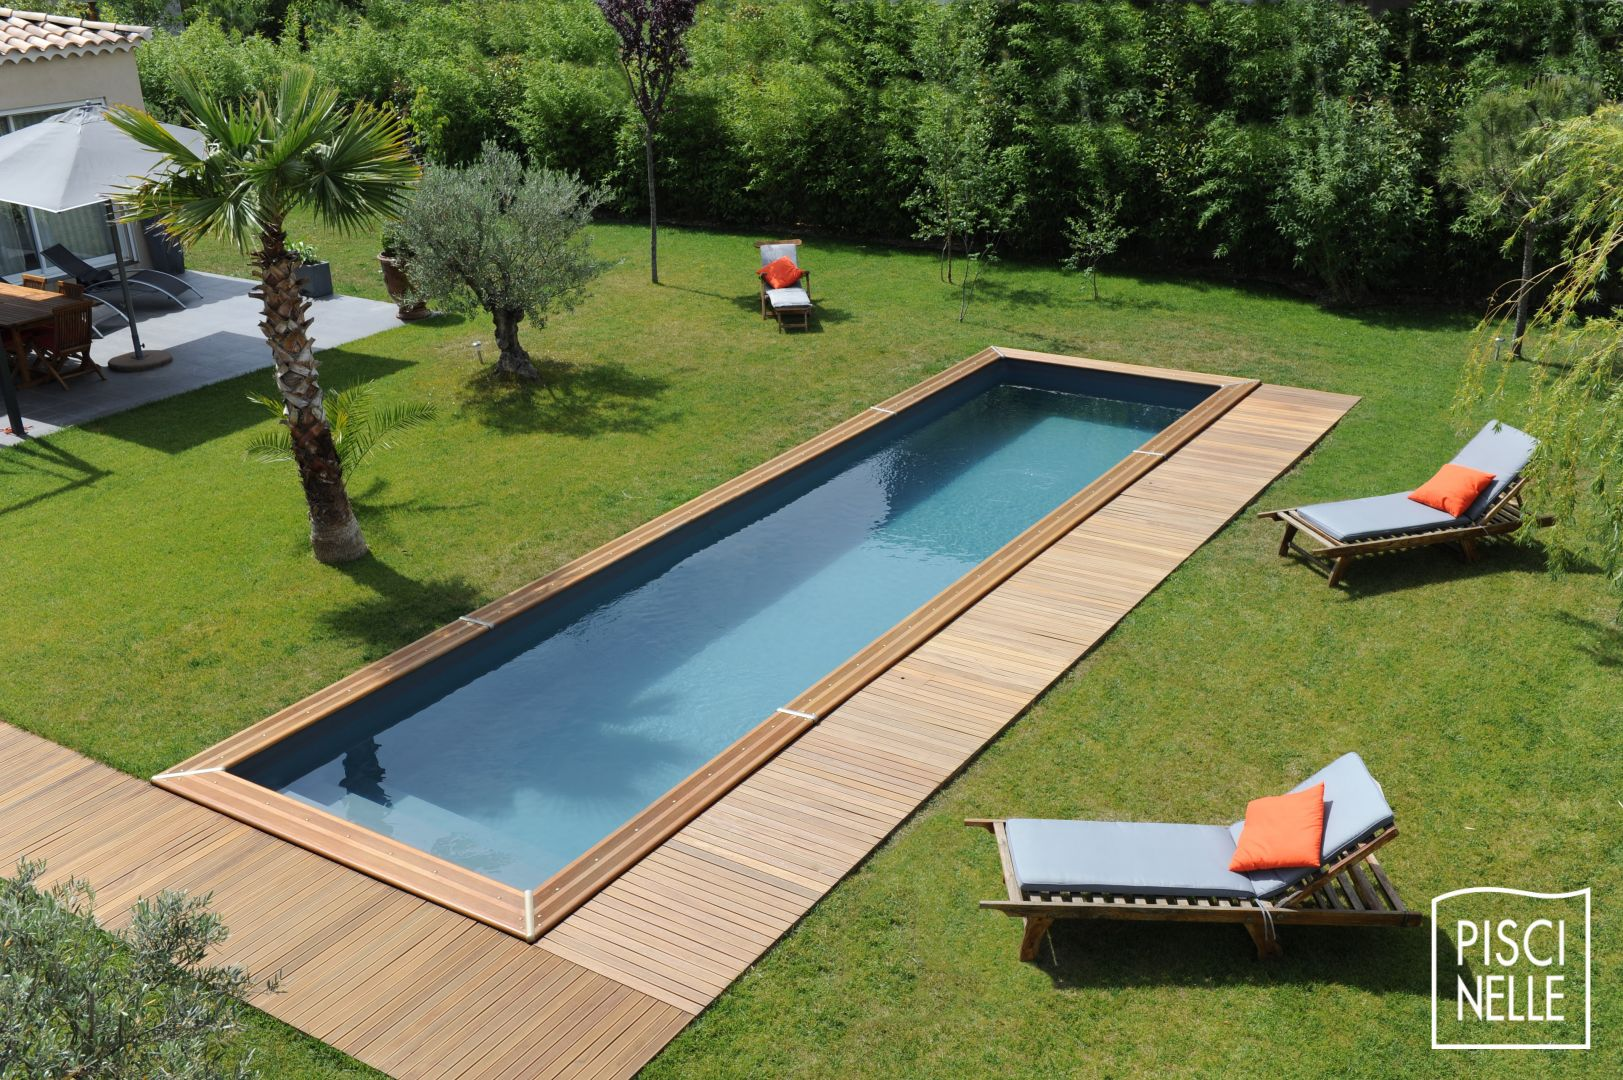 Piscine bois 8x3 for Piscine 8x3